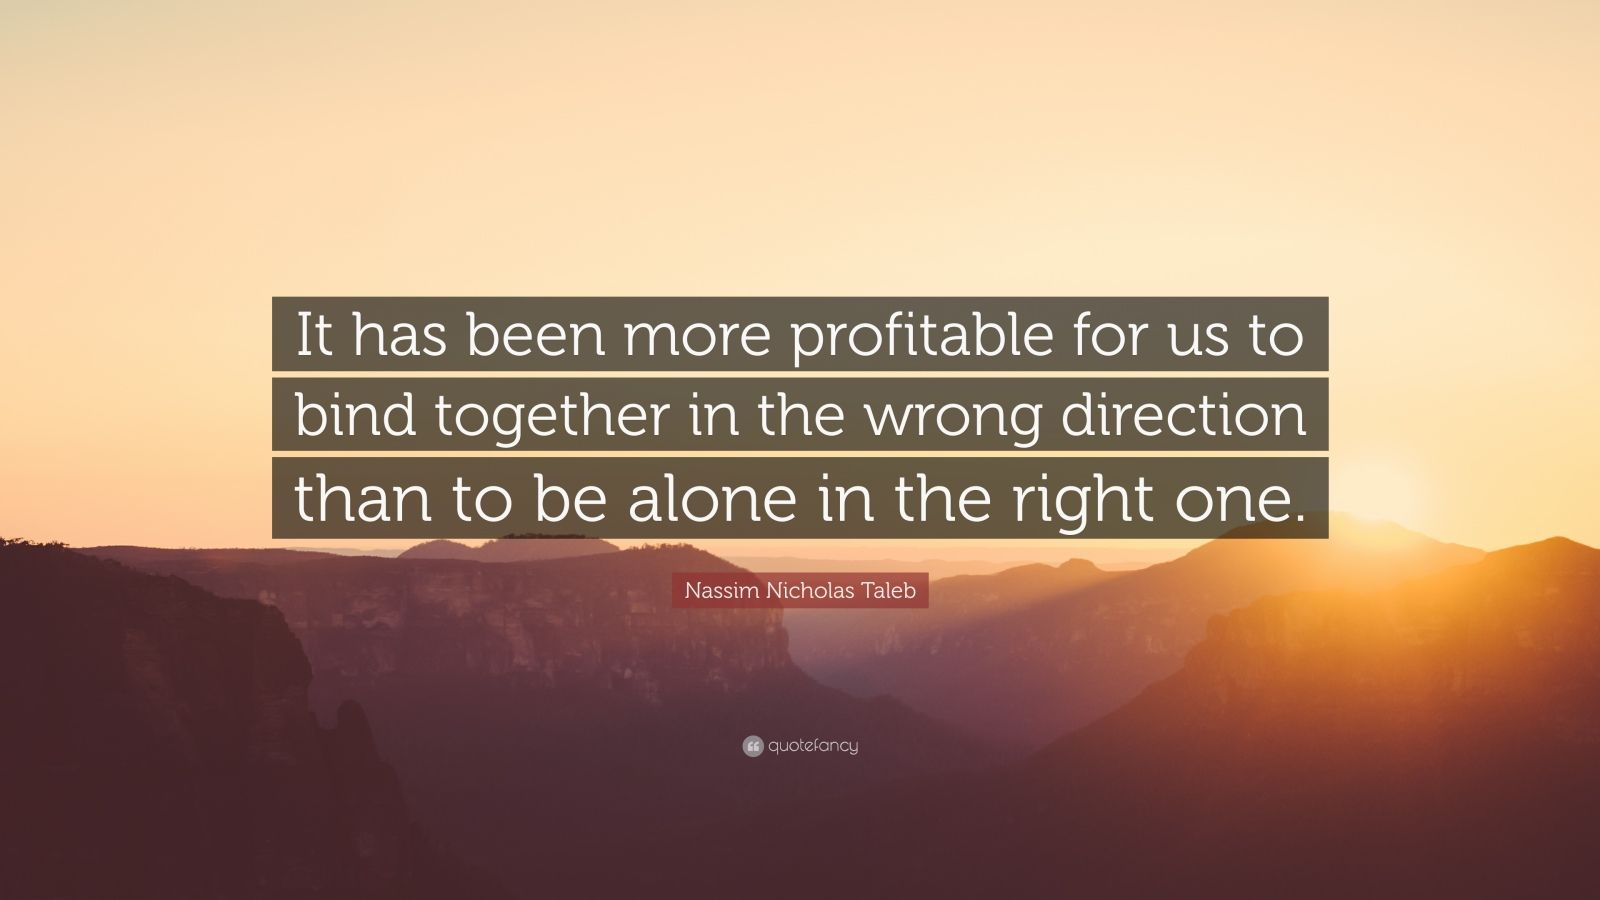 """Nassim Nicholas Taleb Quote: """"It has been more profitable for us to bind together in the wrong direction than to be alone in the right one."""""""